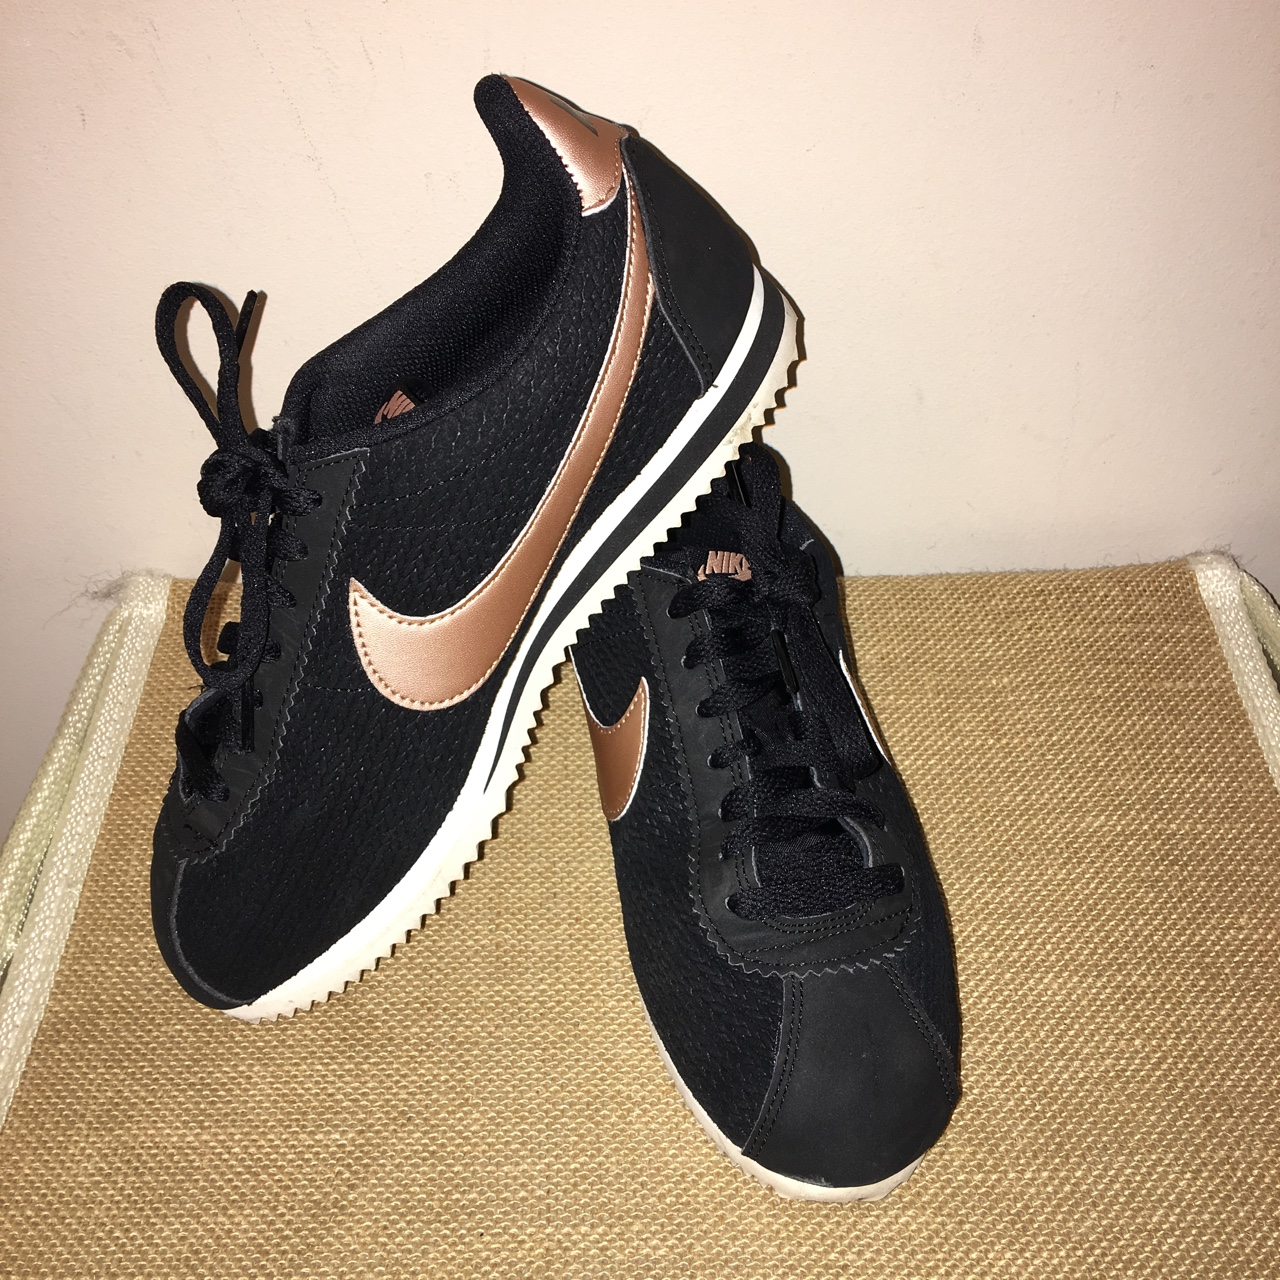 new products c0bdd 3173a Nike Cortez, black and rose gold. Size 5. RRP £75.... - Depop